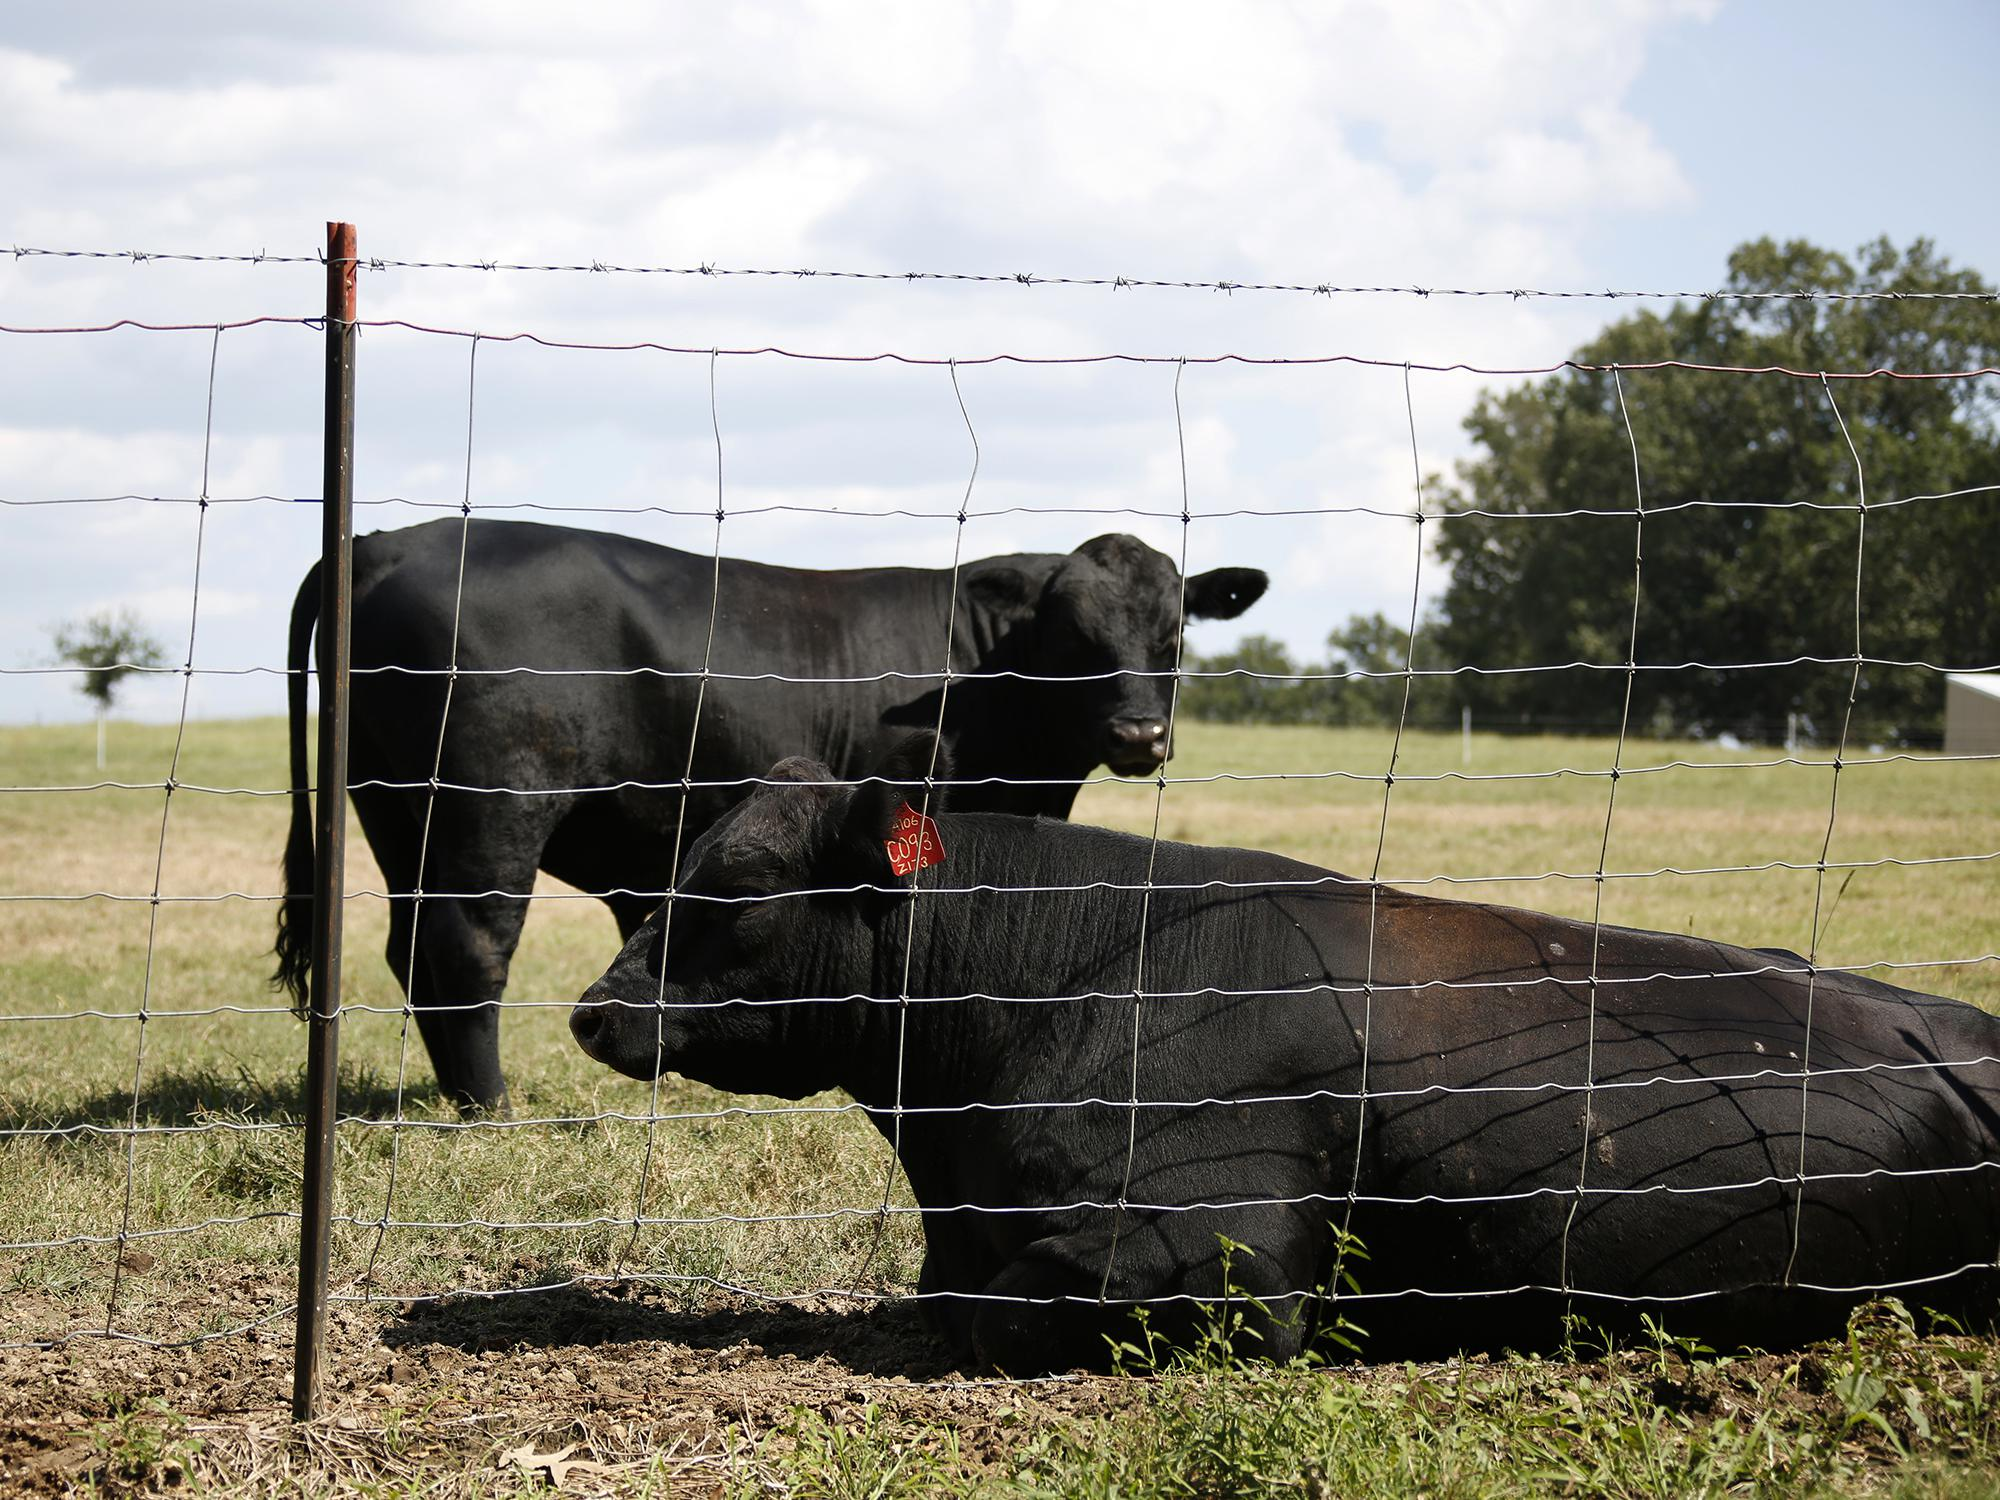 Two black cows in pasture